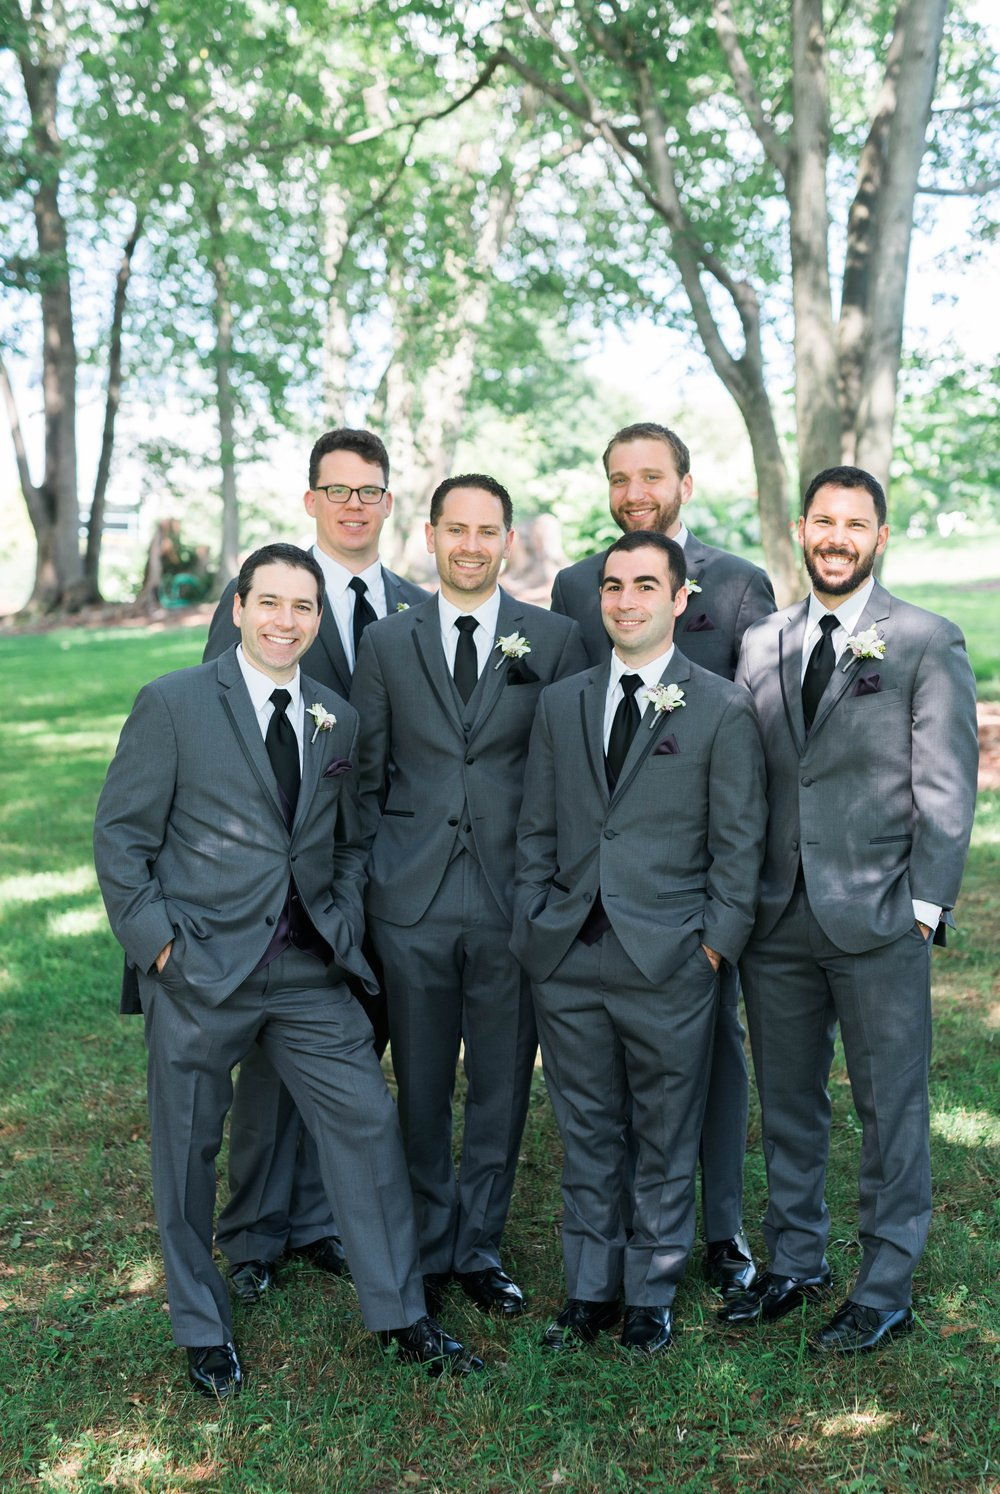 TheAtriumatMeadowlark_Virginiawedding photographer_lynchburgweddingphotographer_DCweddingPhotographer_KristinAaron 28.jpg